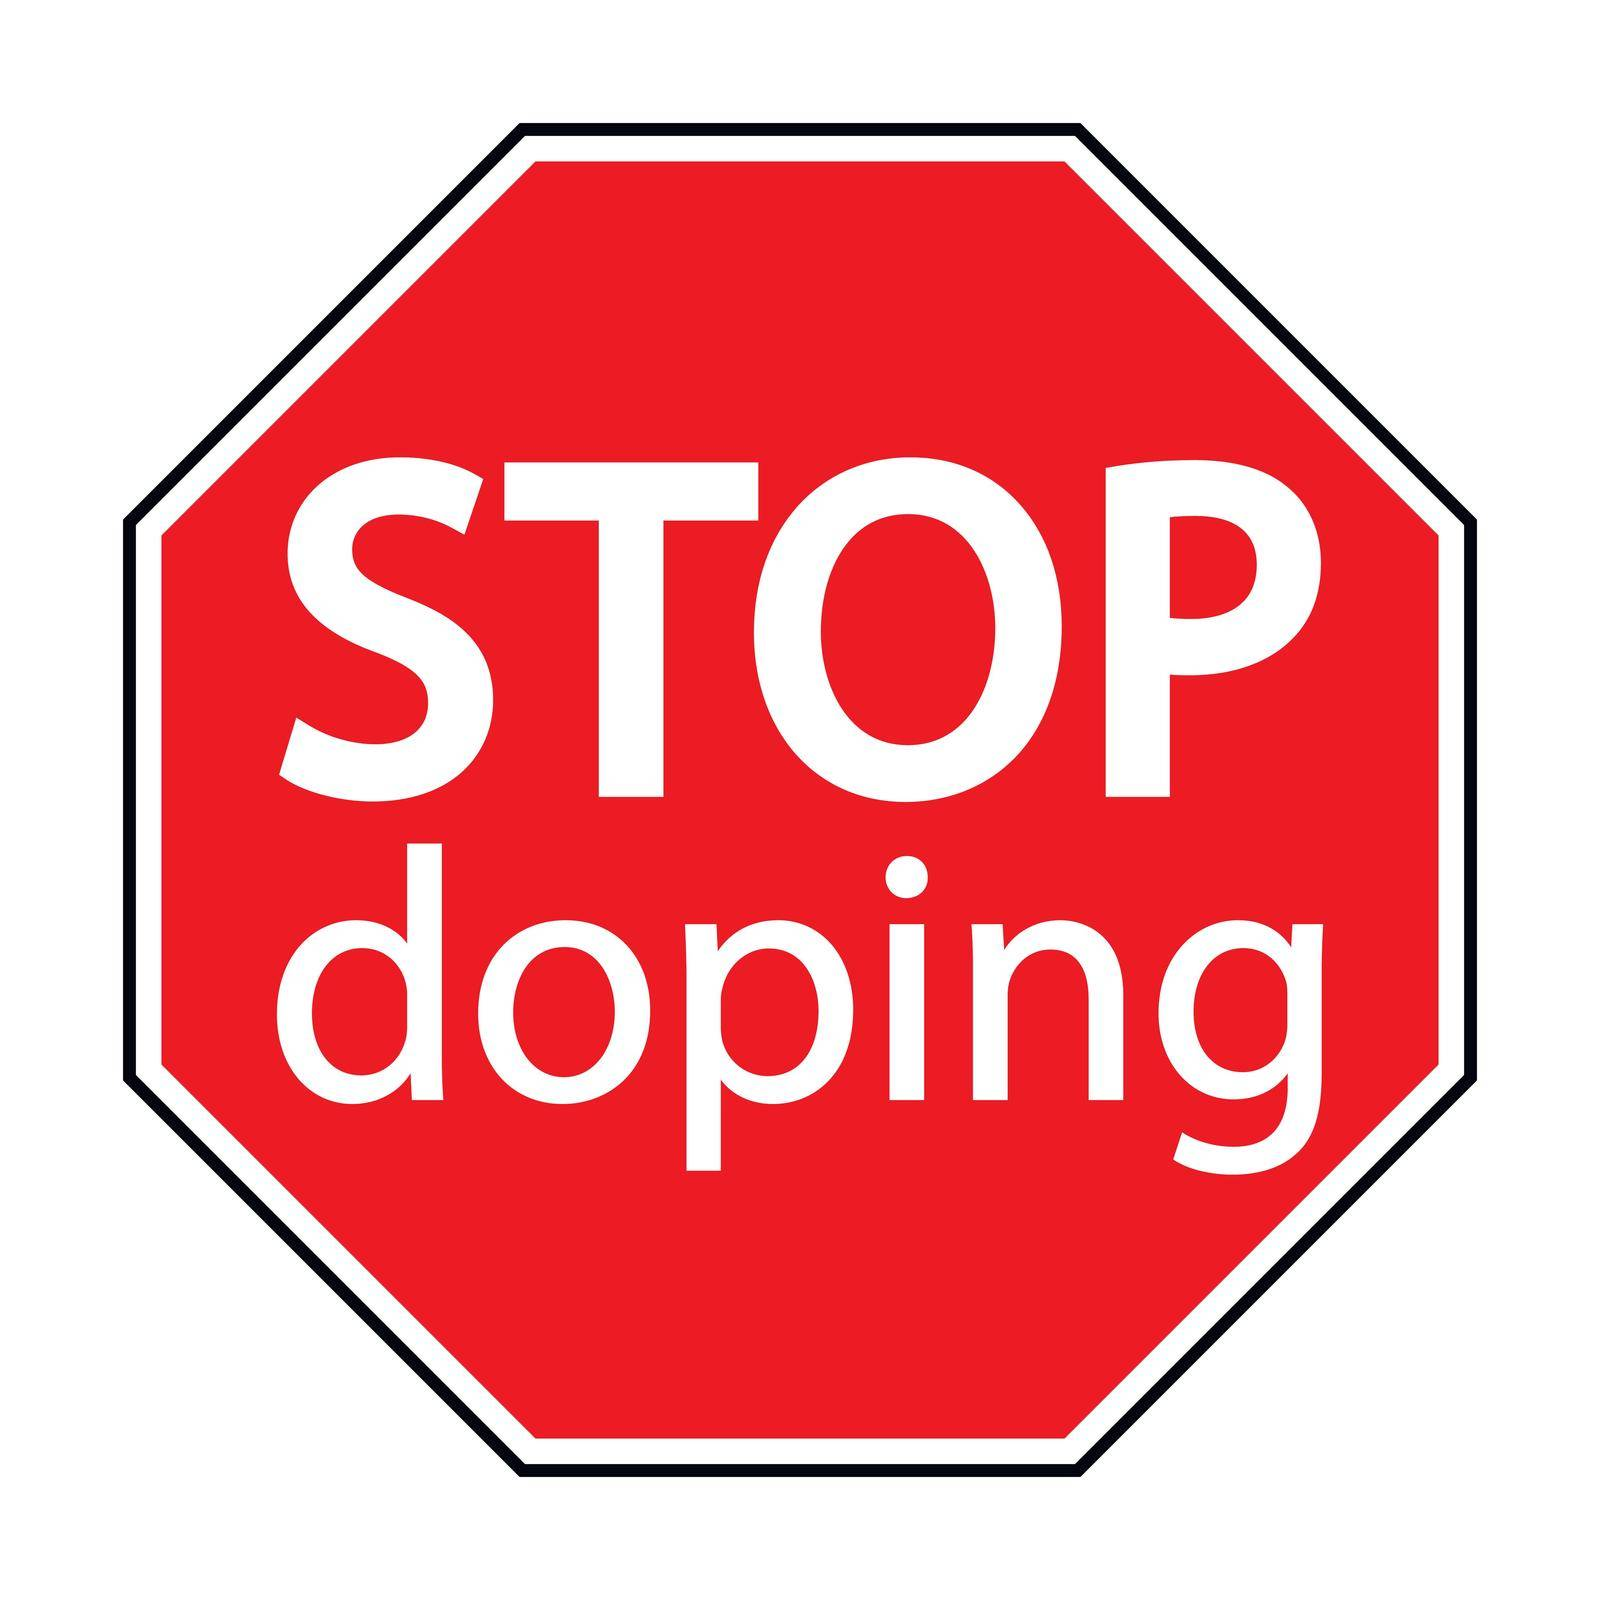 red octagonal sign stop doping by koksikoks